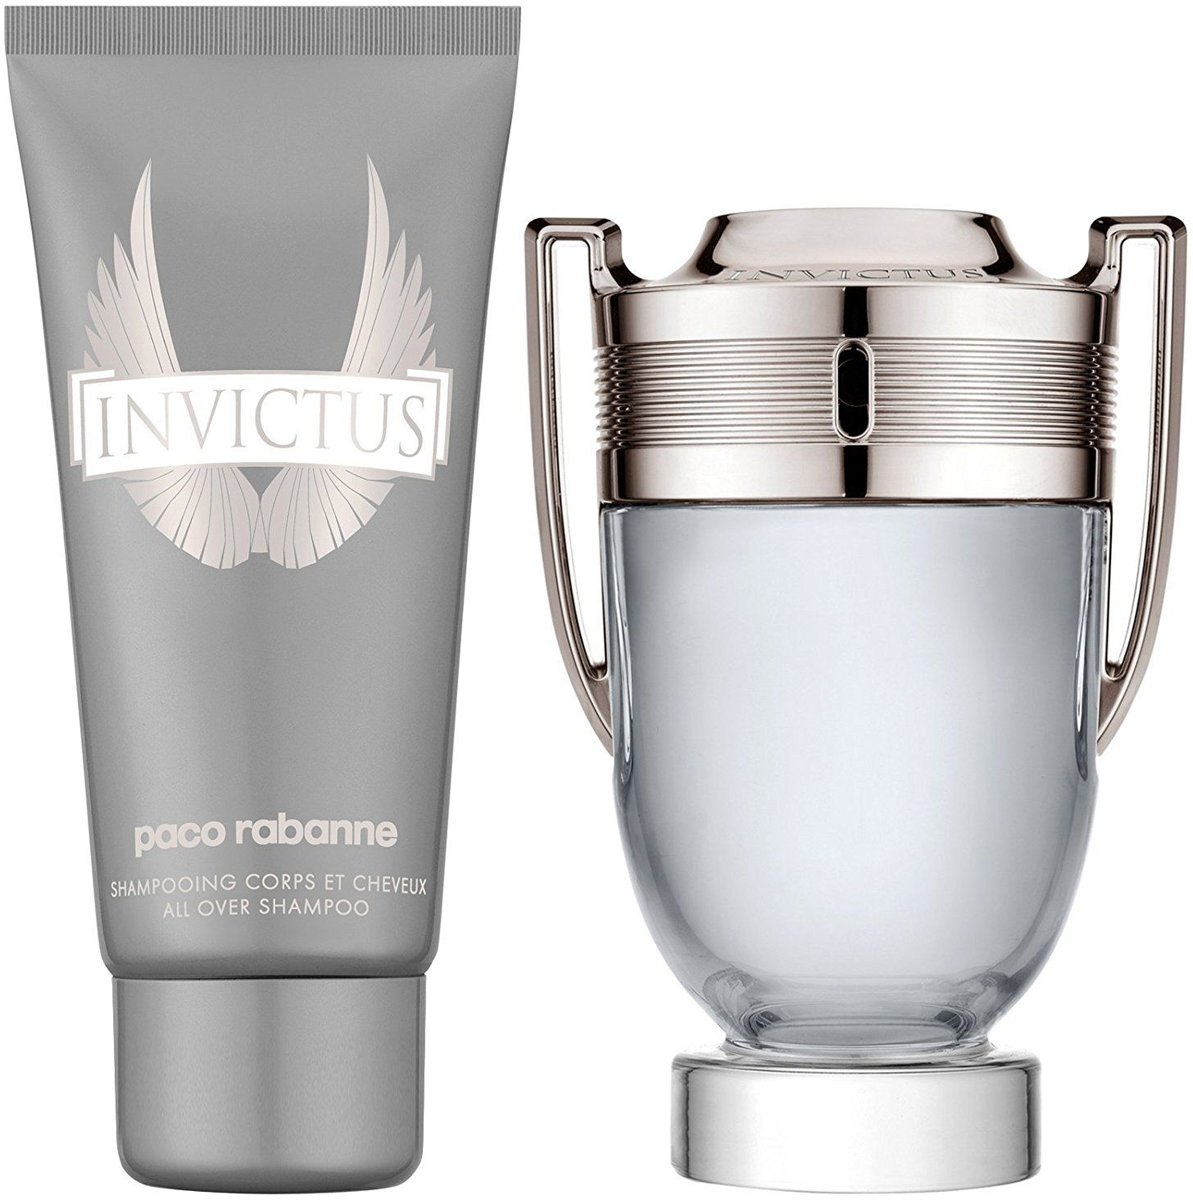 Paco Rabanne Invictus - 100 ml - EdT Herenparfum + 100 ml Shampoo + 10ml Mini EdT Giftset